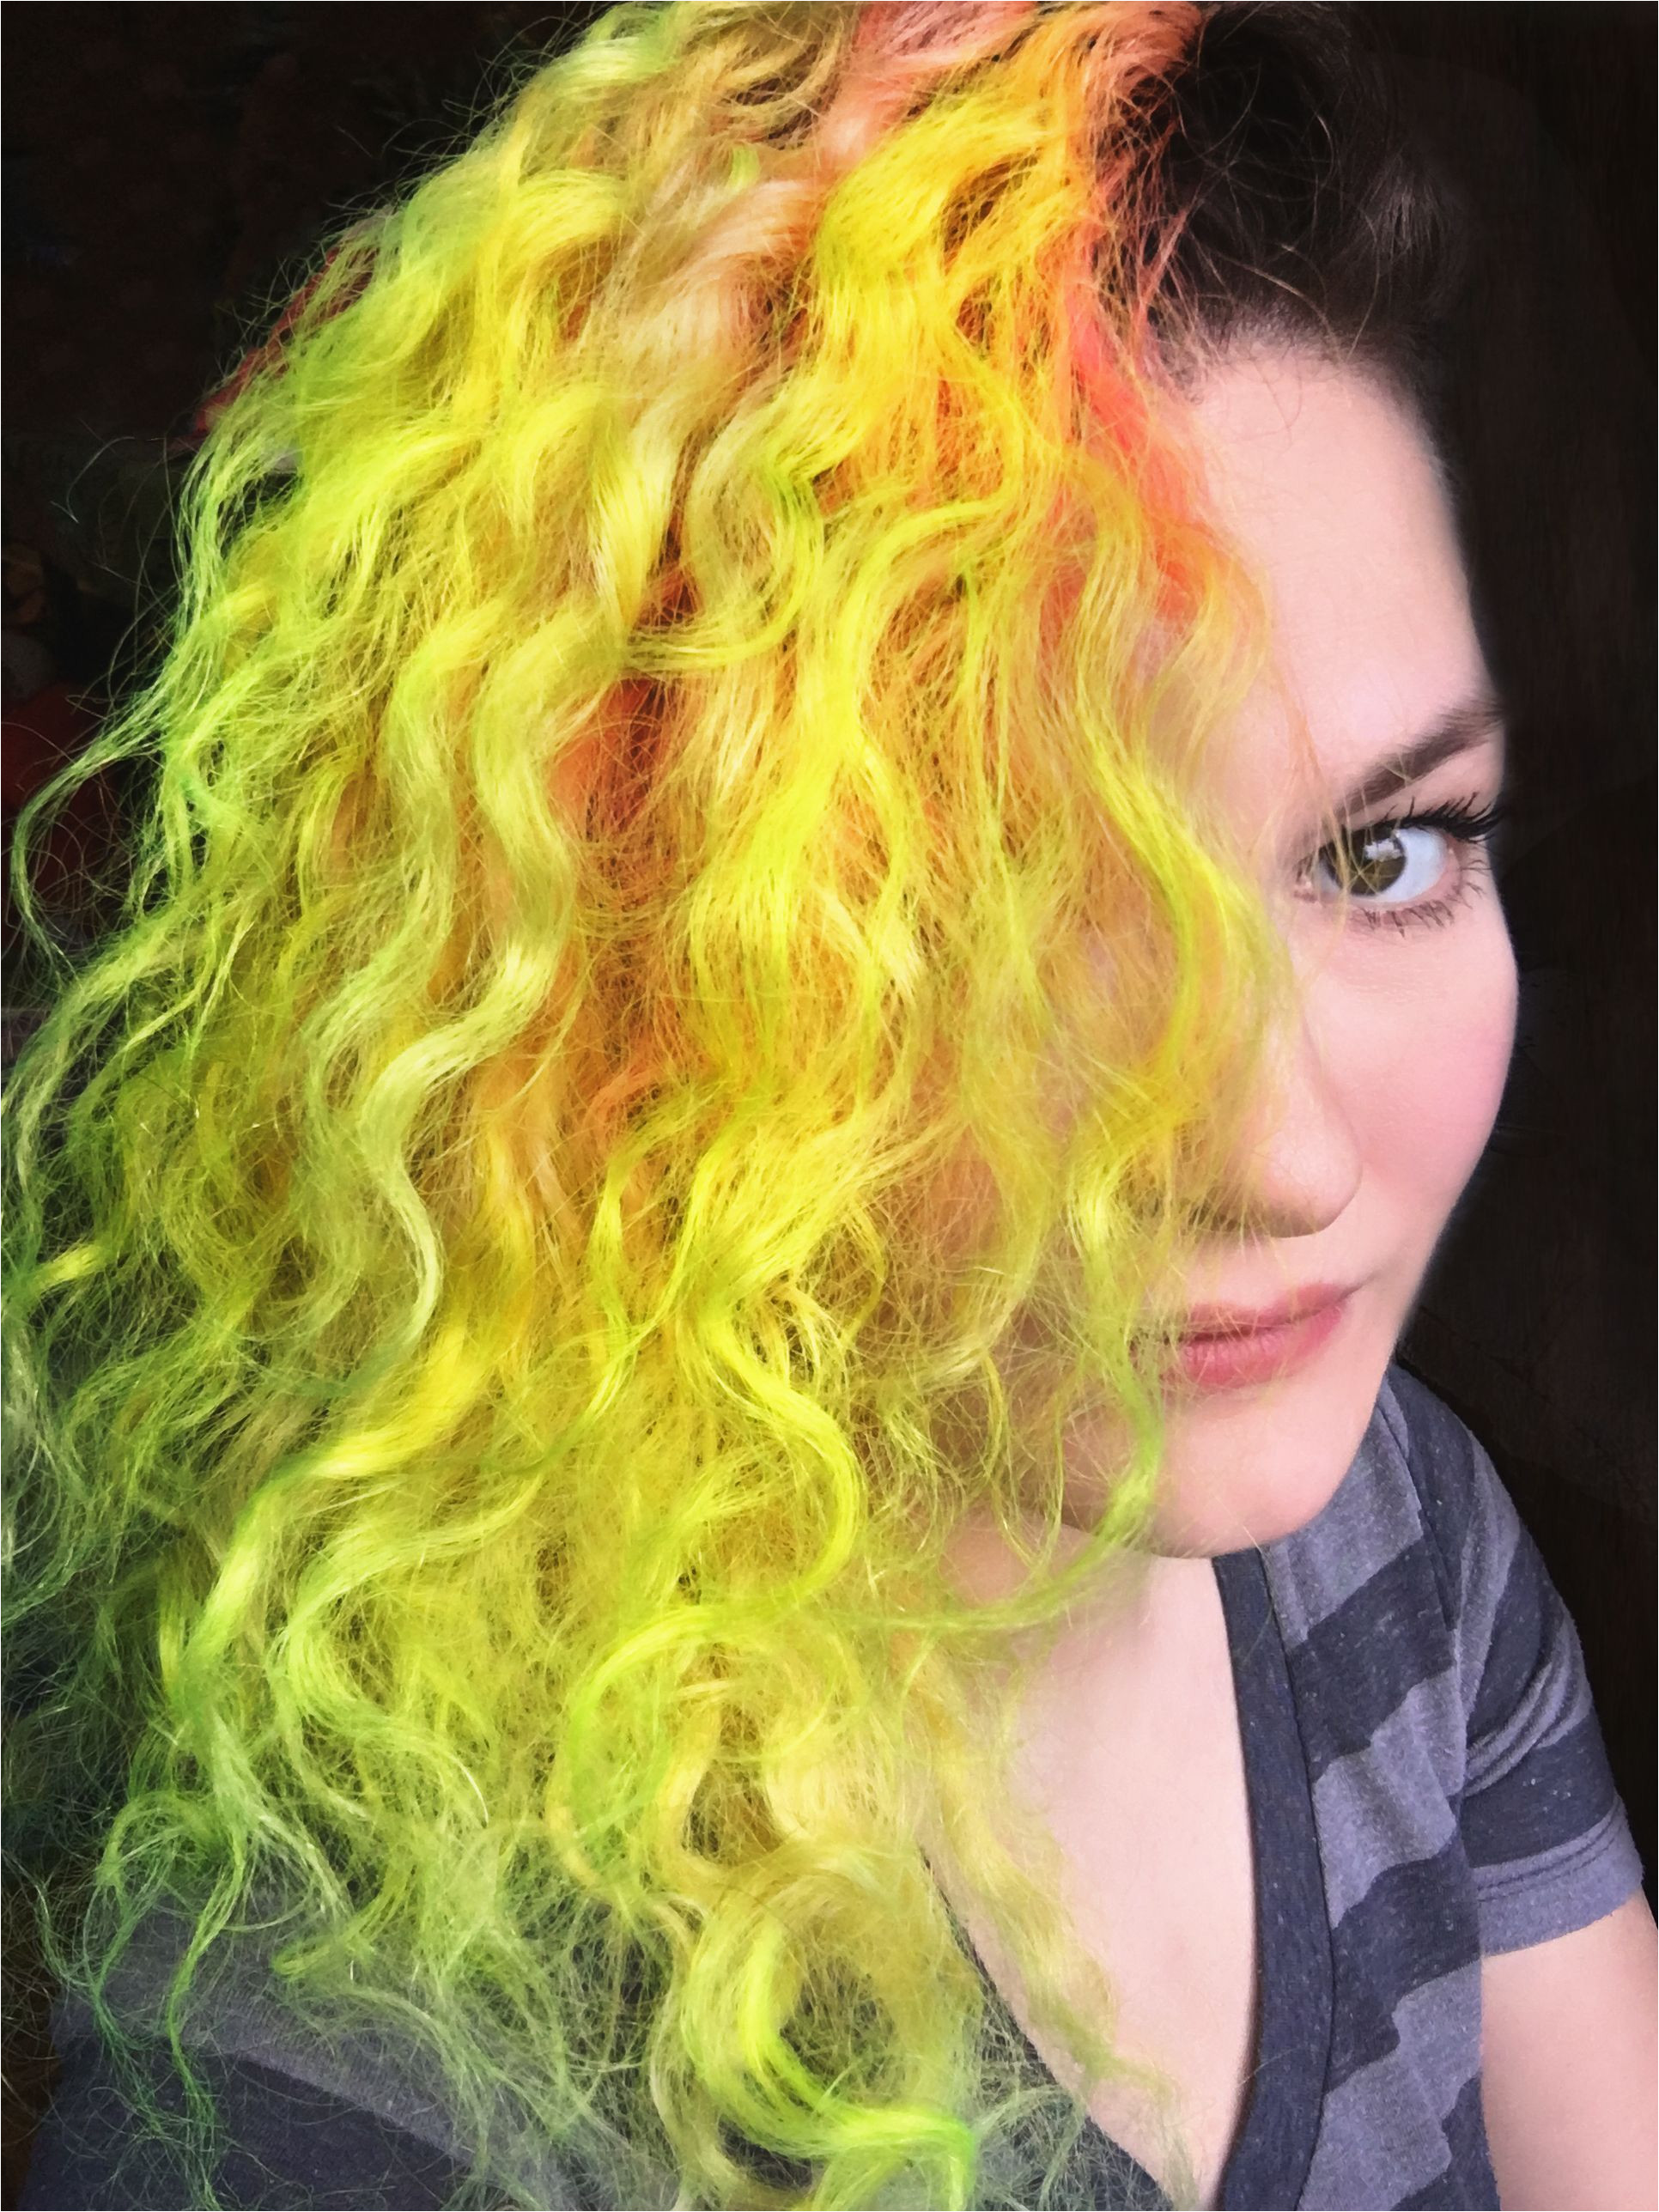 Neon Yellow curly hair with a side shave Dyed with Pravana Vivids